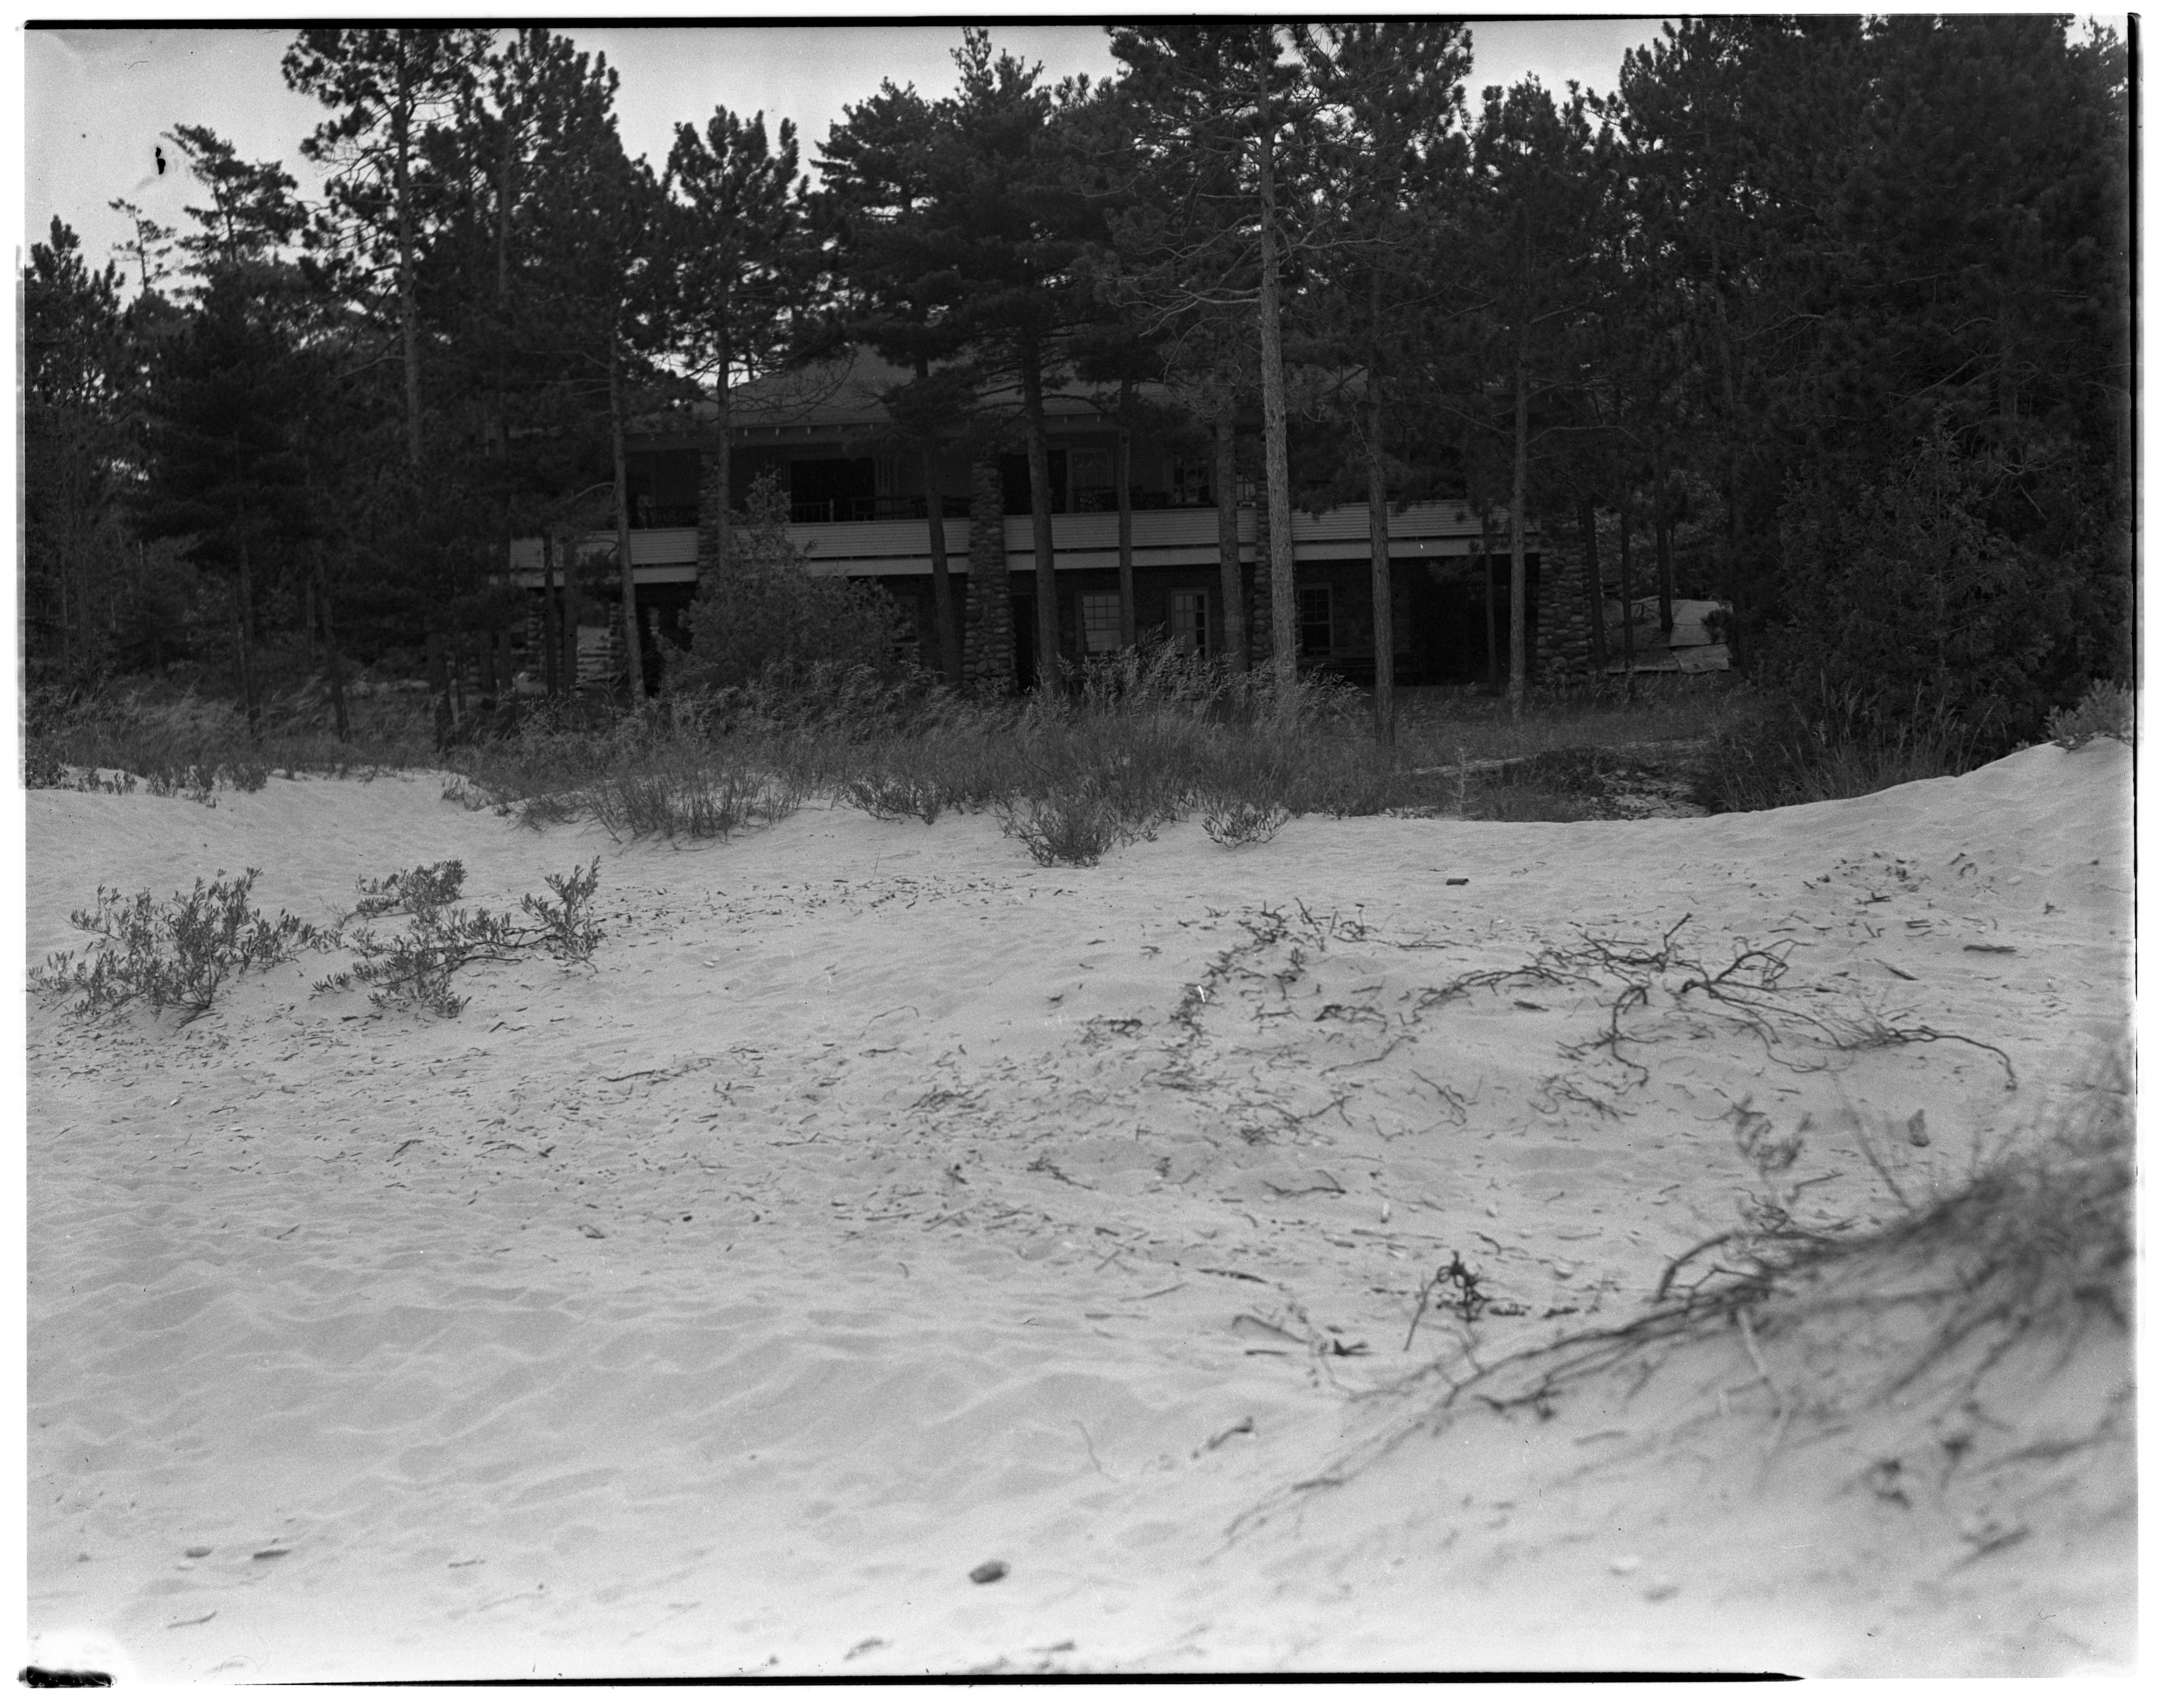 """Smoke Trails"", Bay City, MI to 40 Mile Point, MI - House on Dunes image"